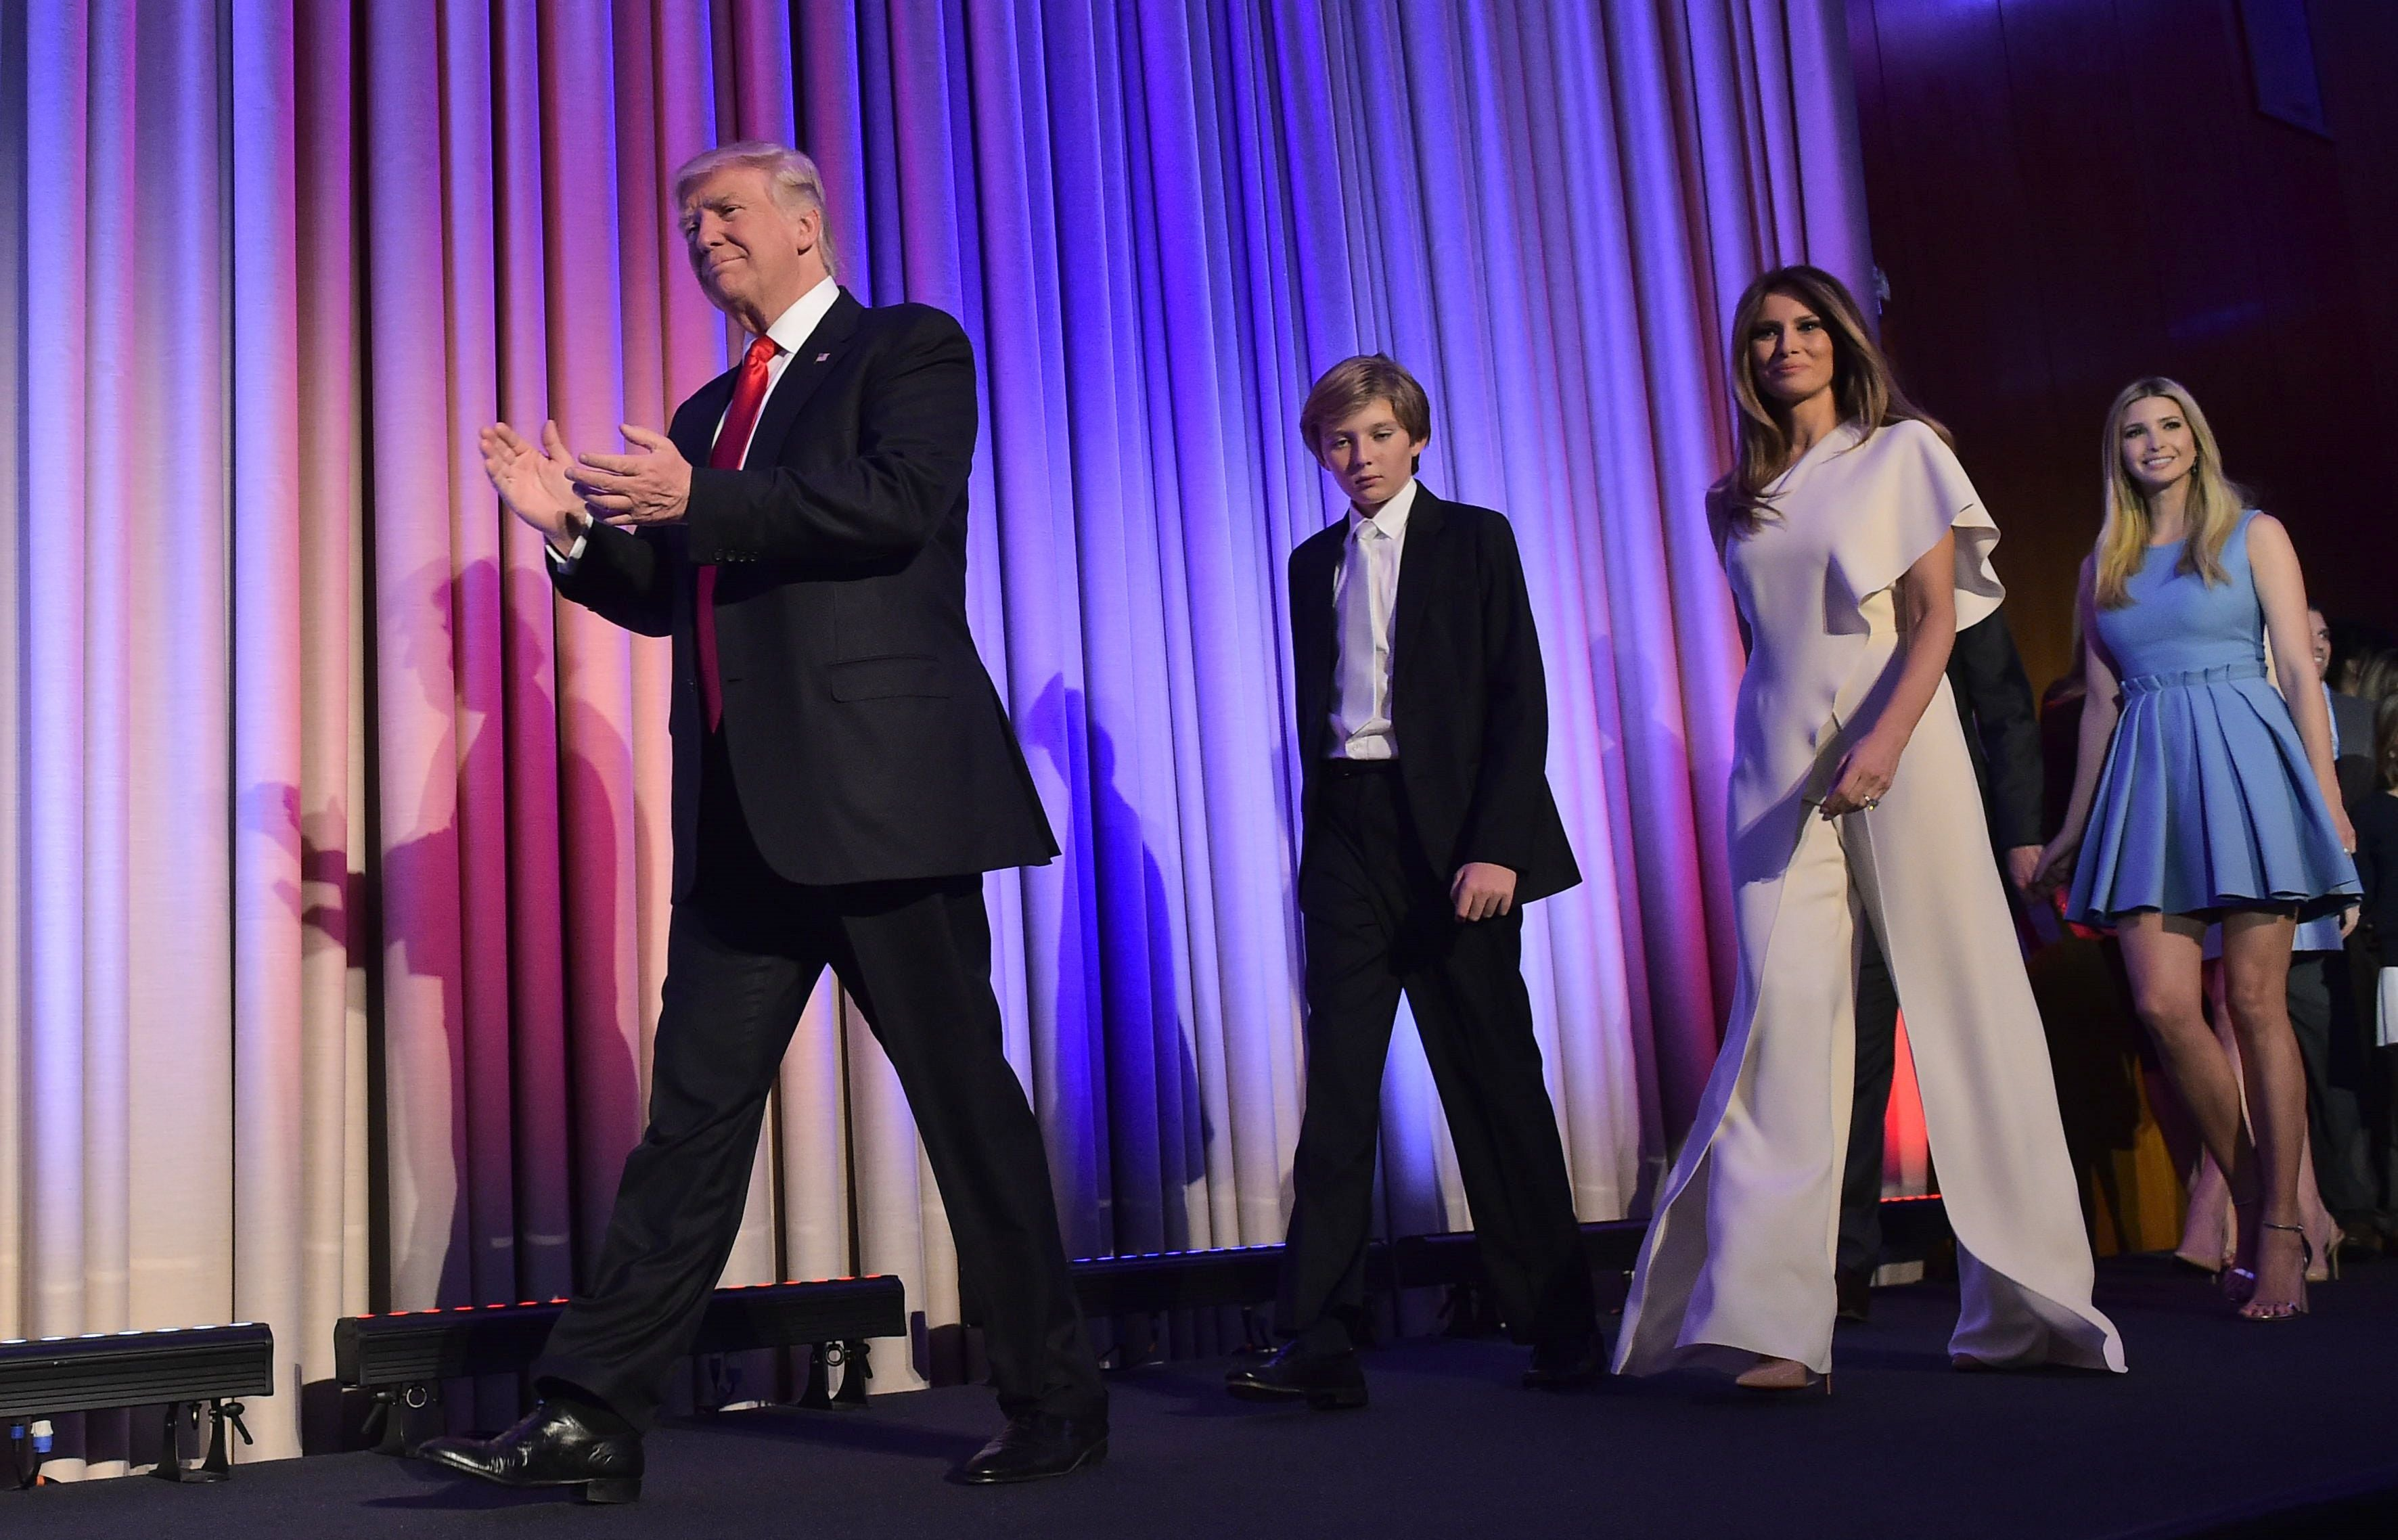 Republican presidential elect Donald Trump arrives with his family on stage to speak during election night at the New York Hilton Midtown in New York on November 9, 2016.  Trump stunned America and the world Wednesday, riding a wave of populist resentment to defeat Hillary Clinton in the race to become the 45th president of the United States. / AFP PHOTO / MANDEL NGANMANDEL NGAN/AFP/Getty Images